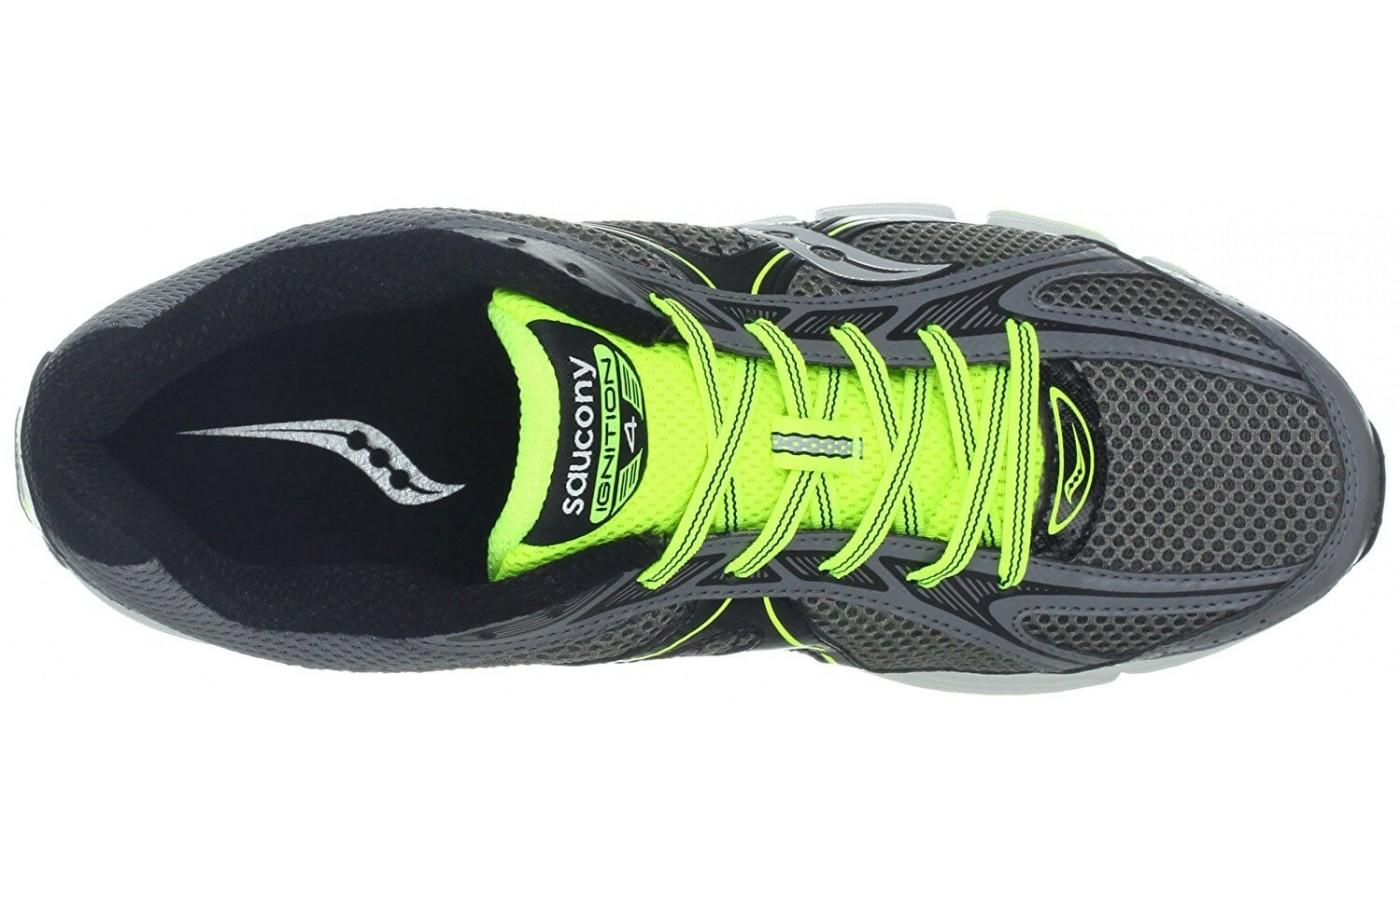 Saucony Ignition 4 has a highly breathable upper unit